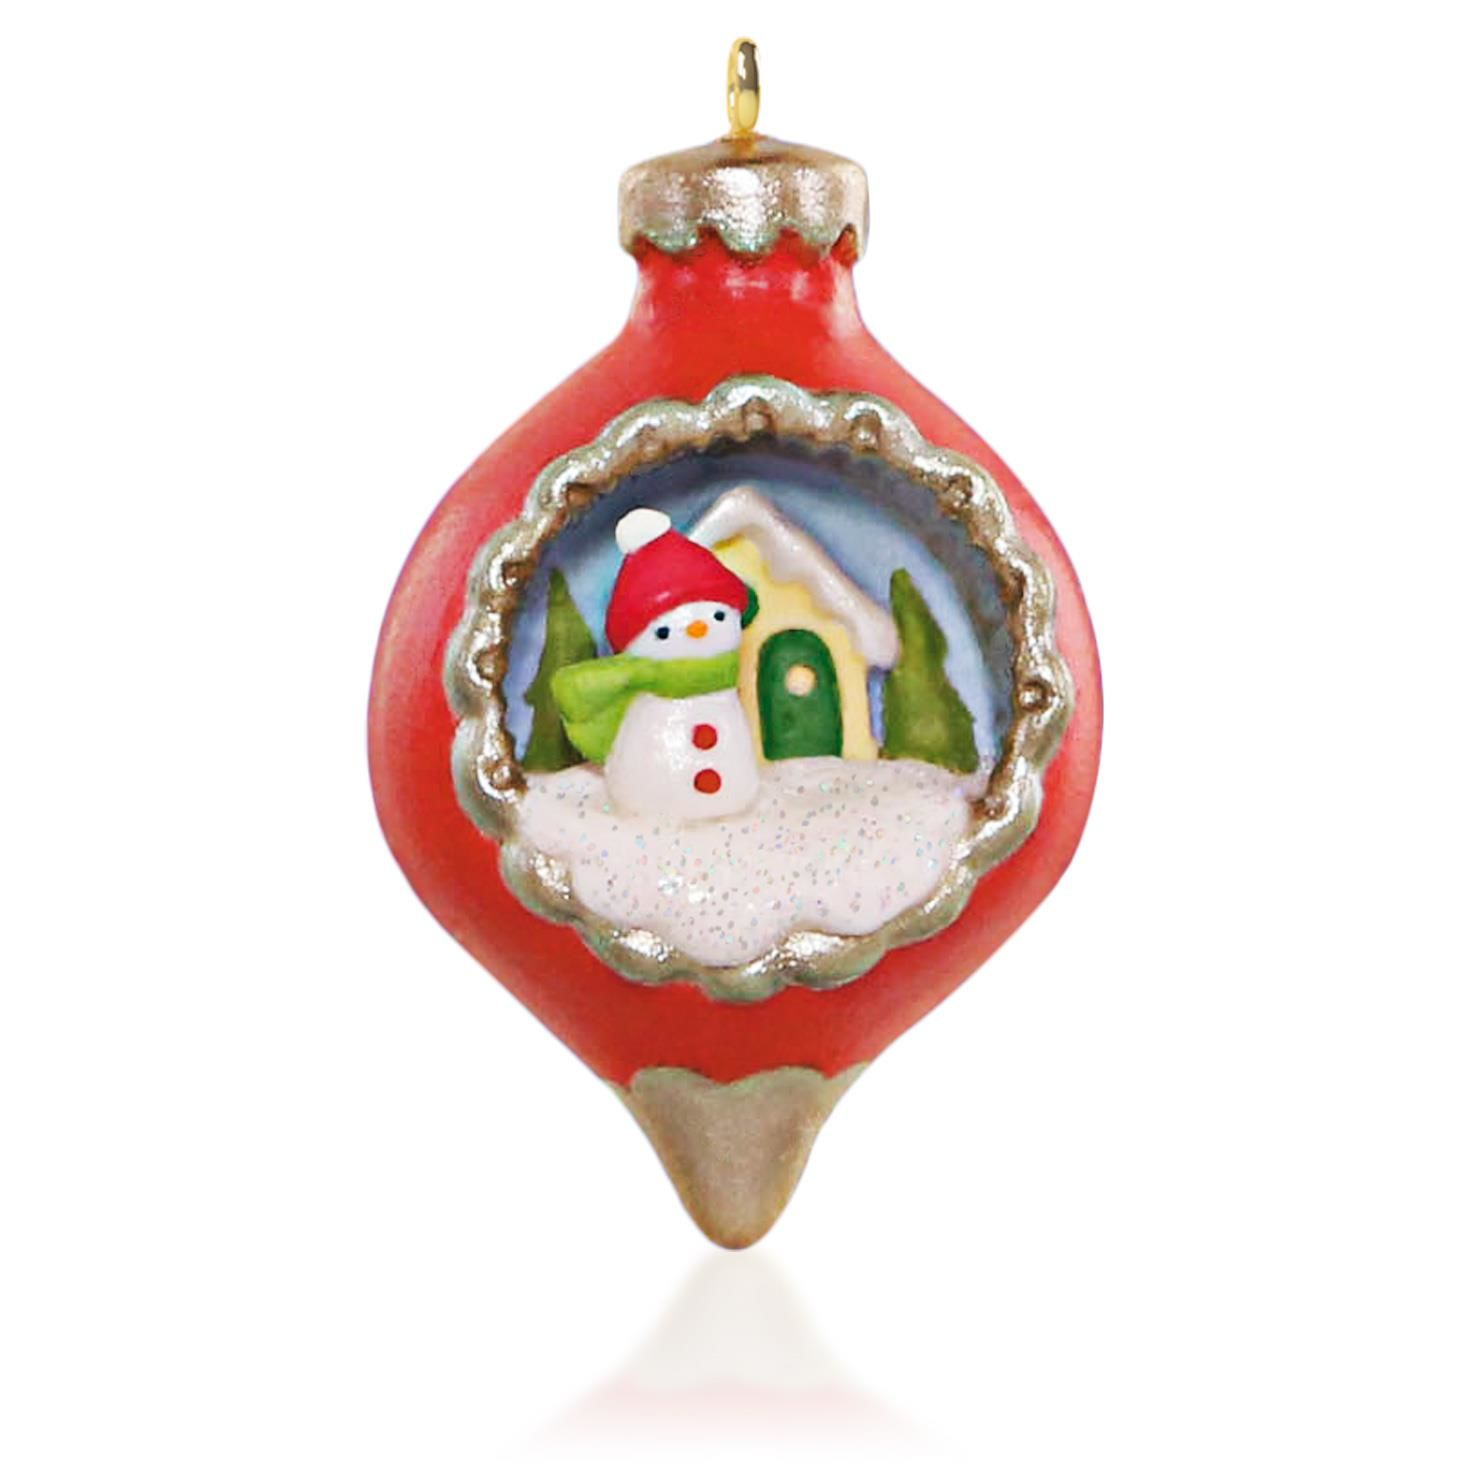 2015 A World Within Miniature Hallmark Keepsake Ornament